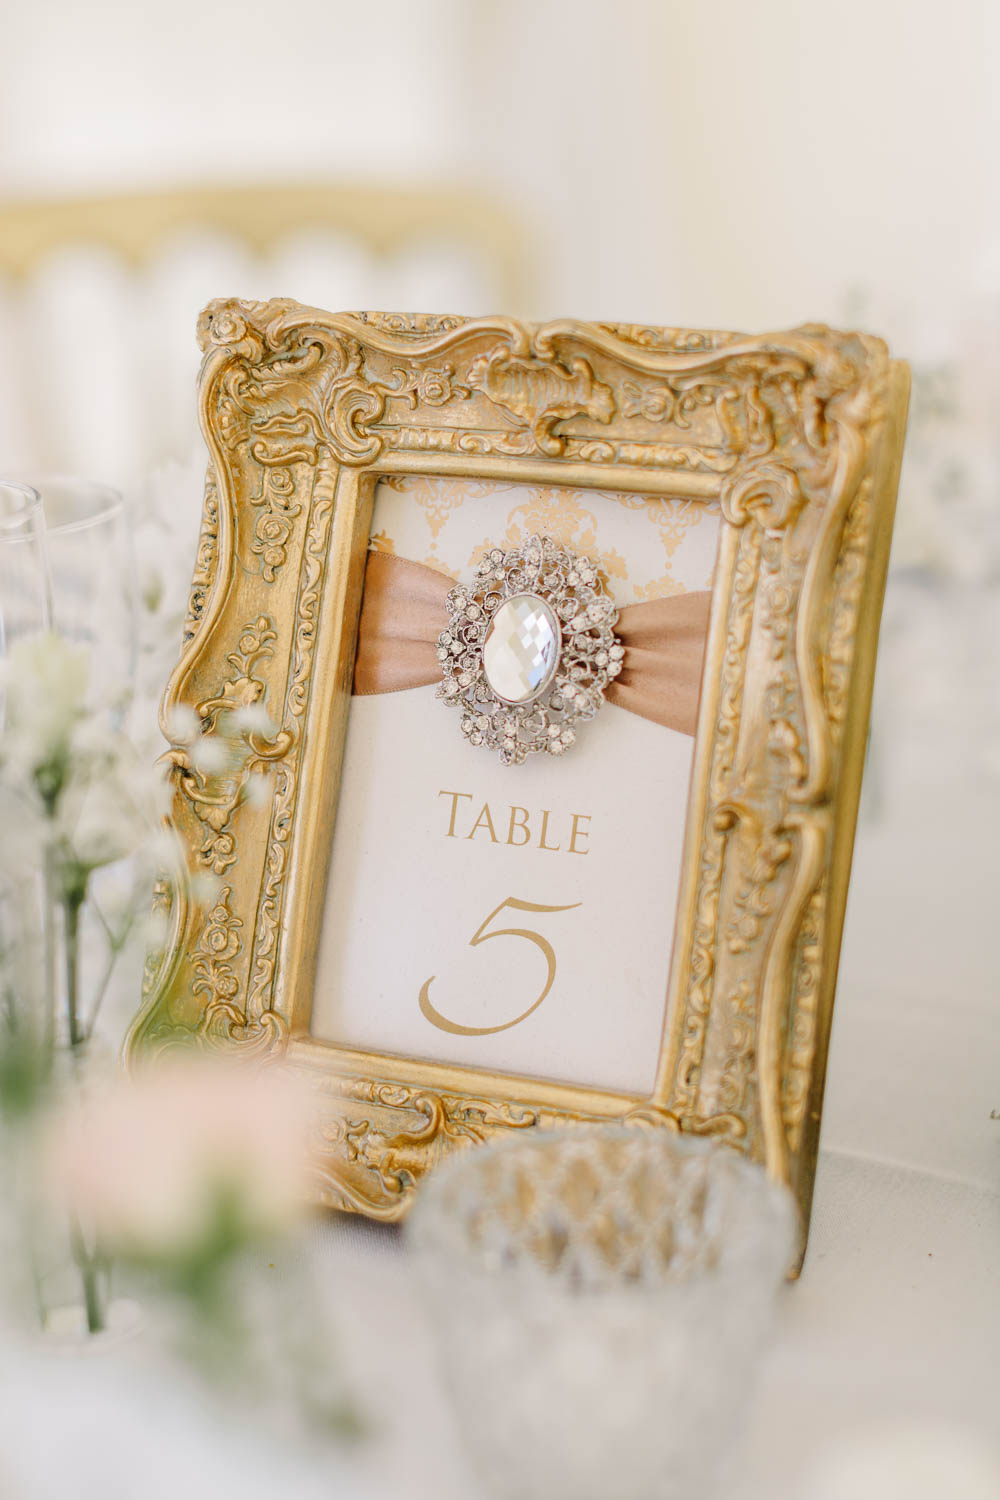 Table Number Gold Guilt Frame Classic Elegant Brewerstreet Farmhouse Wedding Danielle Smith Photography